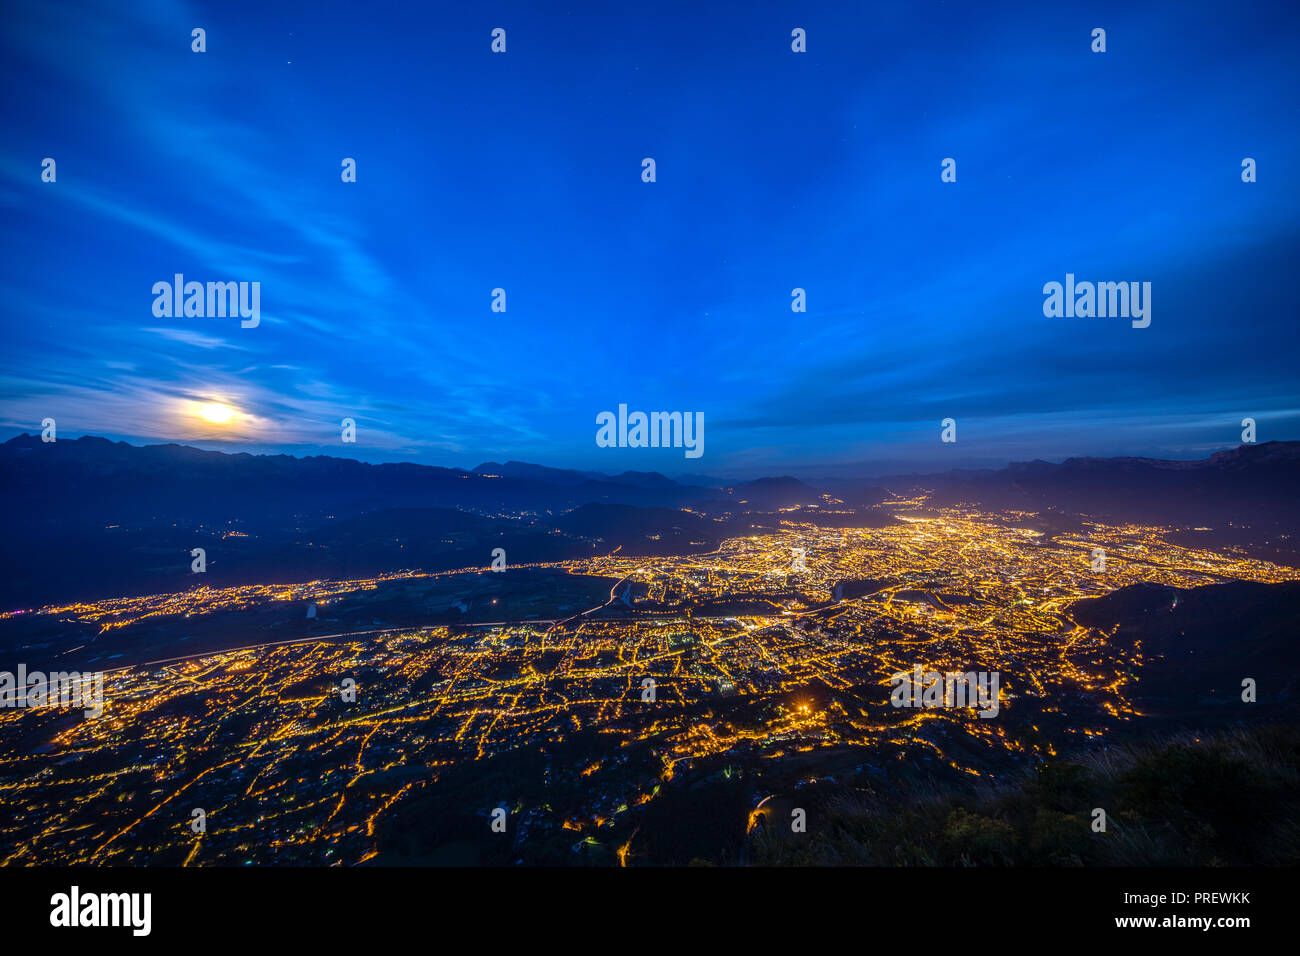 Aerial of Grenoble at night with moon rising over the mountains. - Stock Image